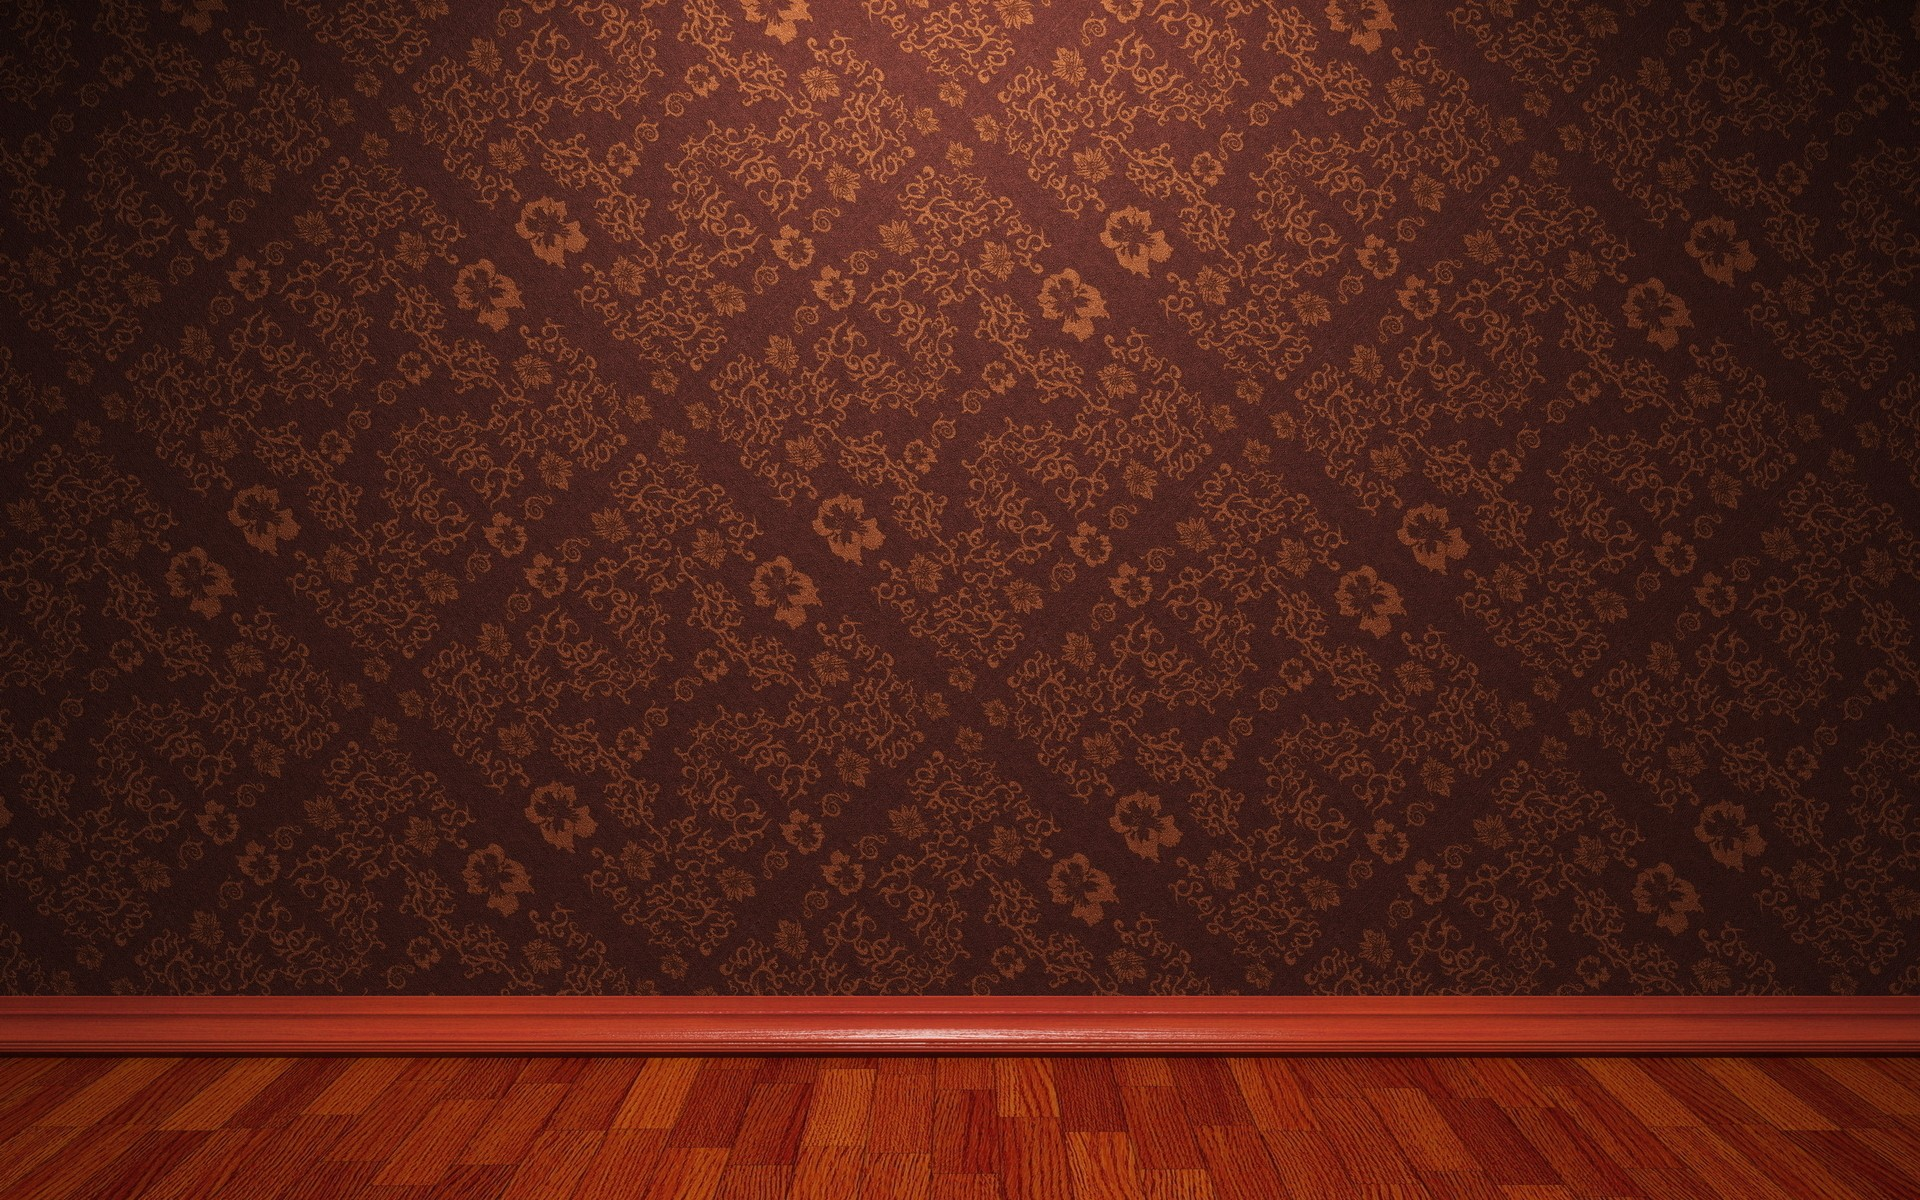 3d floor wallpaper wallpapersafari for 3d room wallpaper background